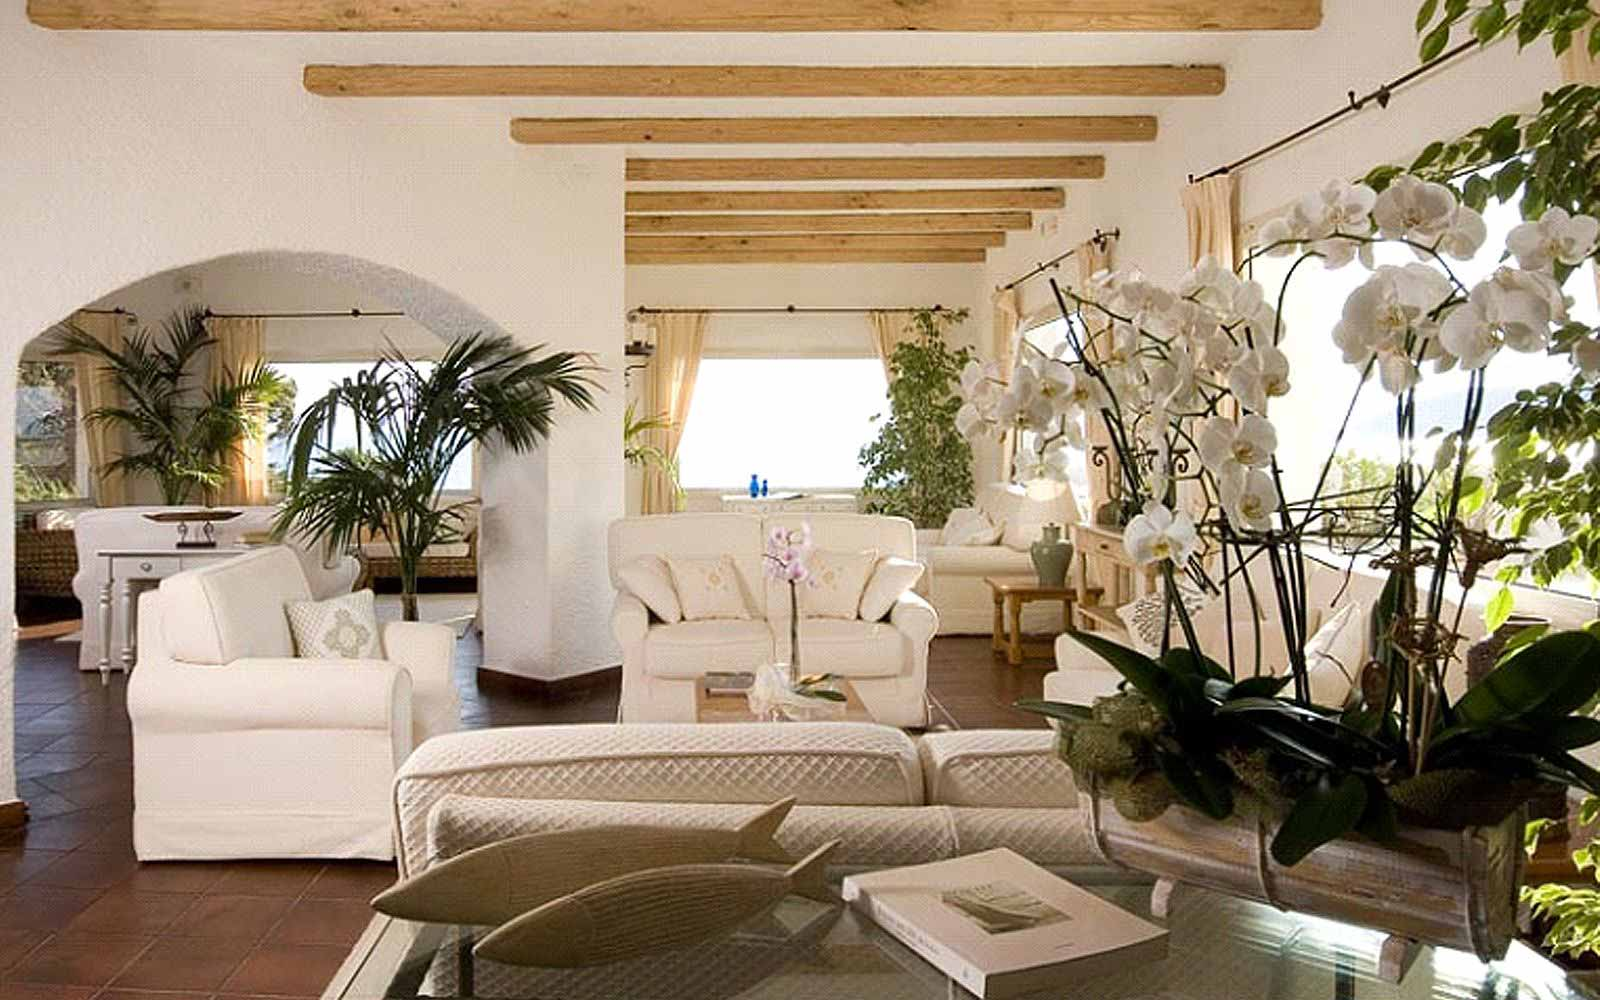 Lounge area at the Colonna Grand Hotel Capo Testa